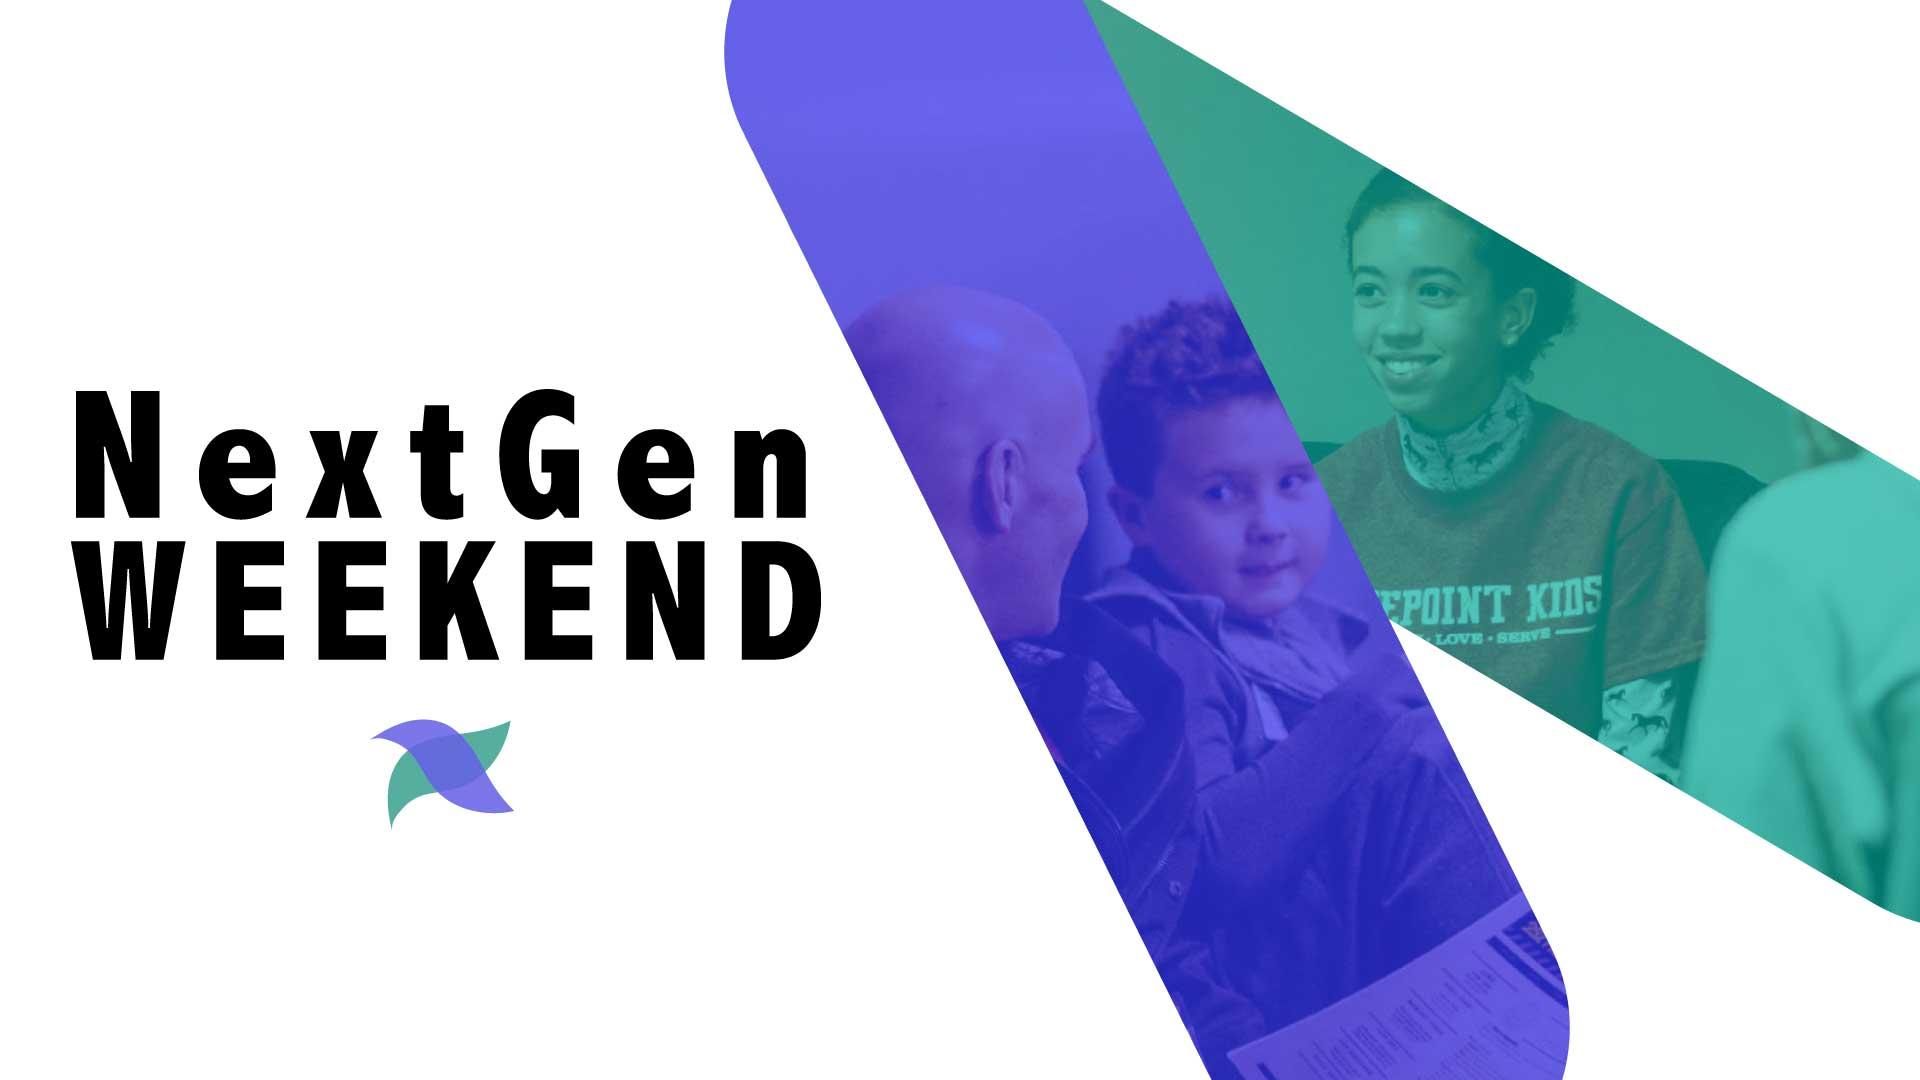 NextGen Weekend